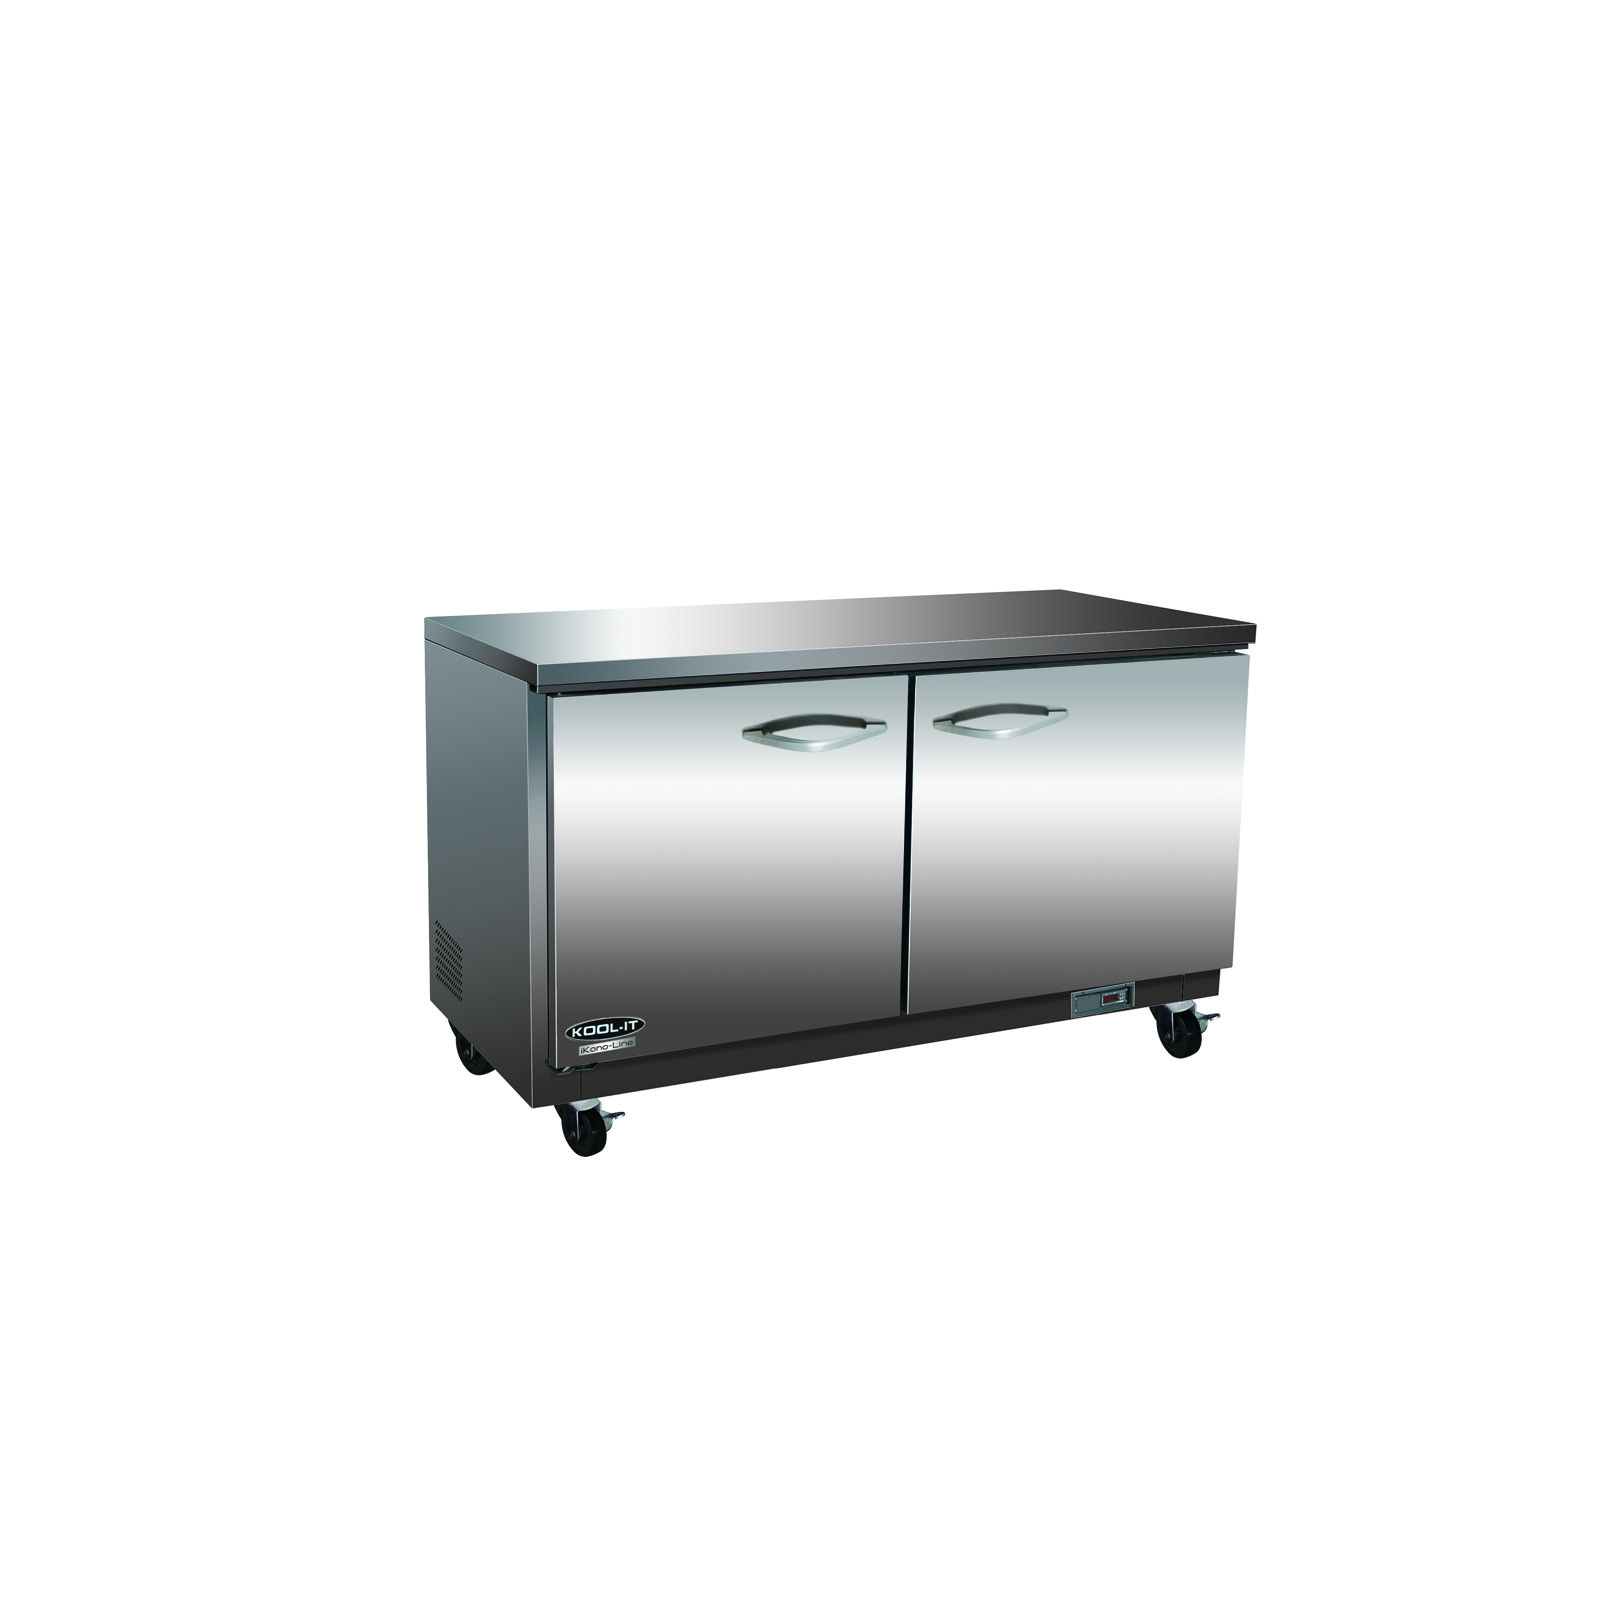 MVP Group LLC IUC48R-2D refrigerator, undercounter, reach-in